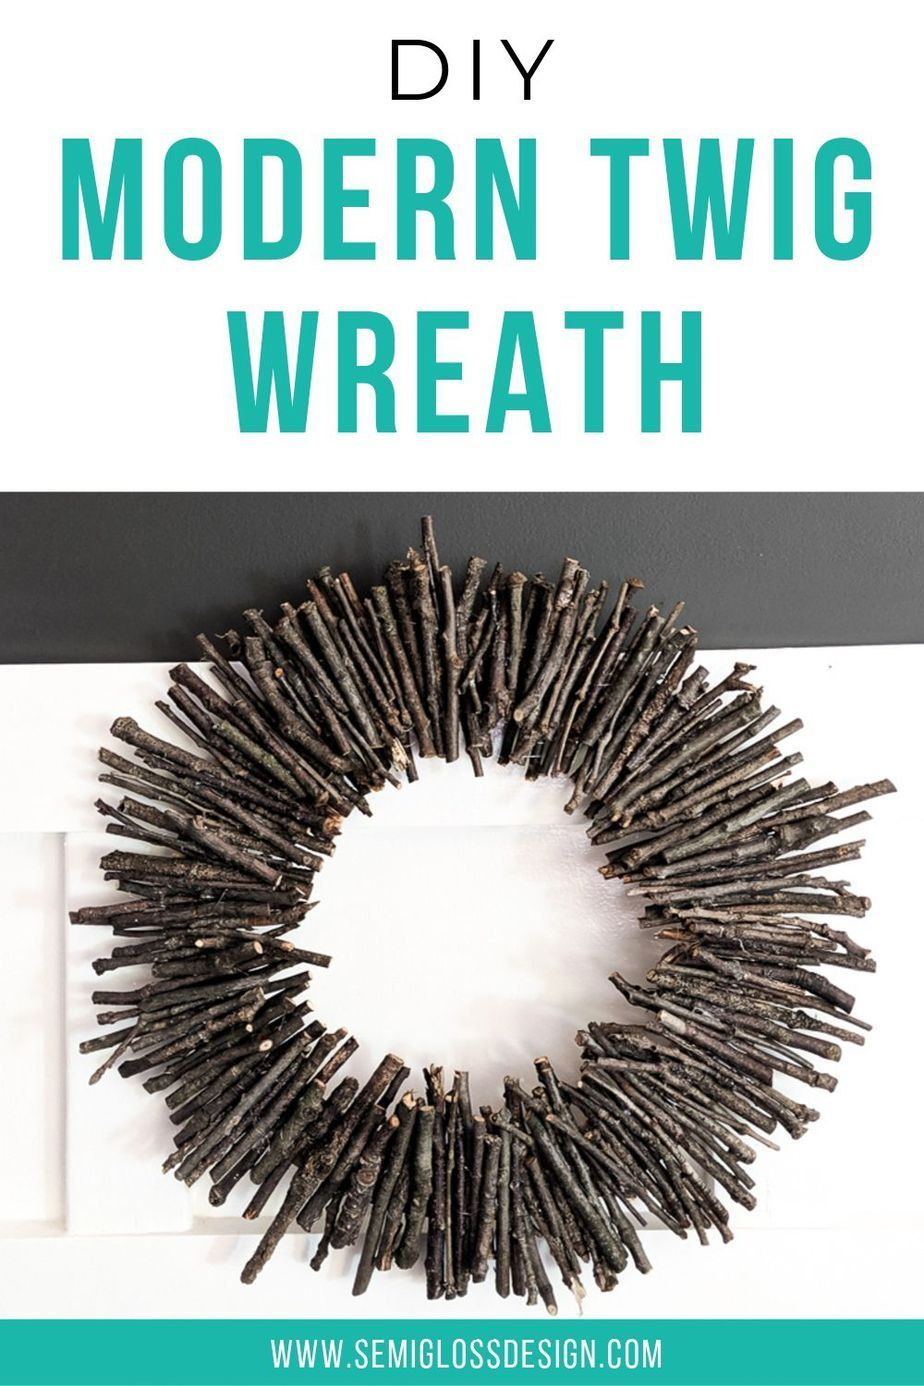 Learn how to make a twig wreath for fall. This modern twig wreath is so easy to make and will look great on your front door! Make this simple wreath today! #semiglossdesign #twigwreath #modernwreath #fallwreath #falldecor #rusticwreath